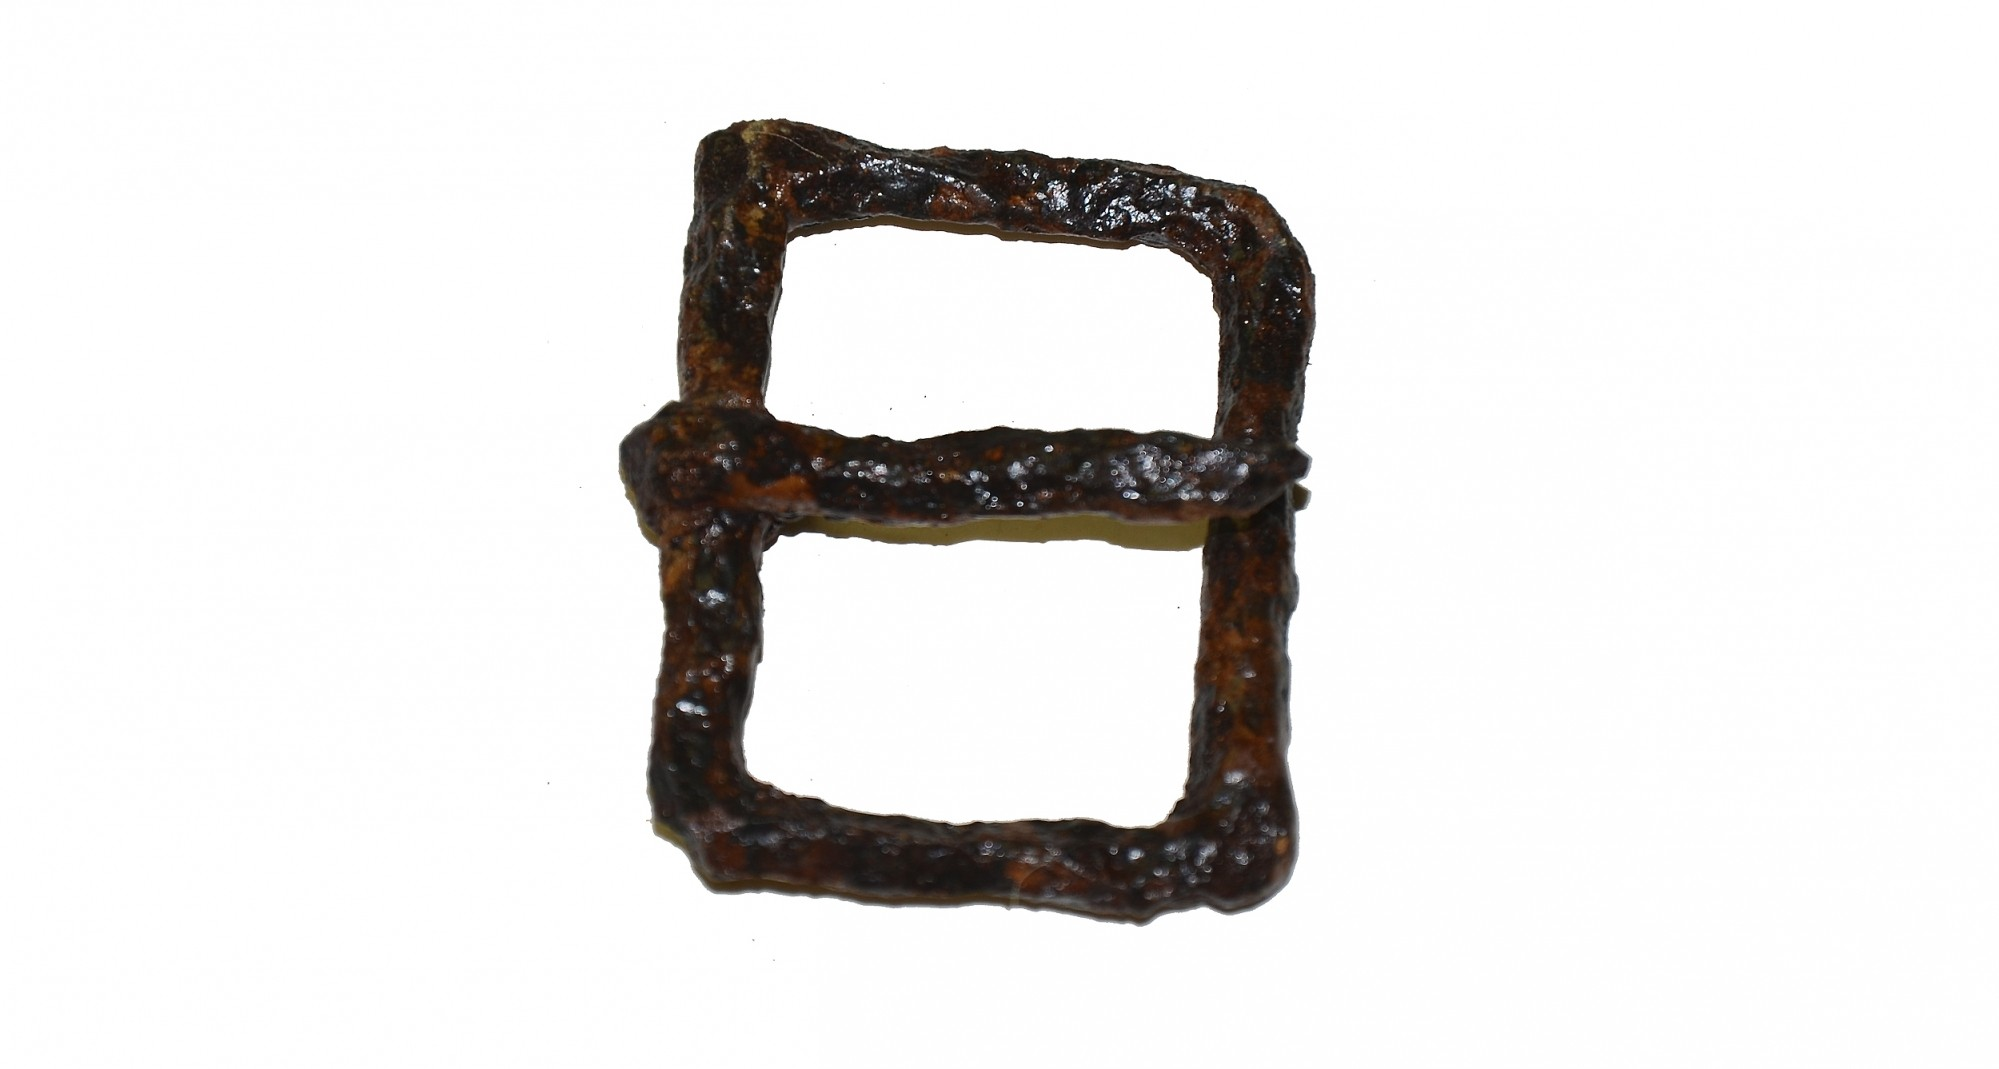 HARNESS BUCKLE FROM GETTYSBURG